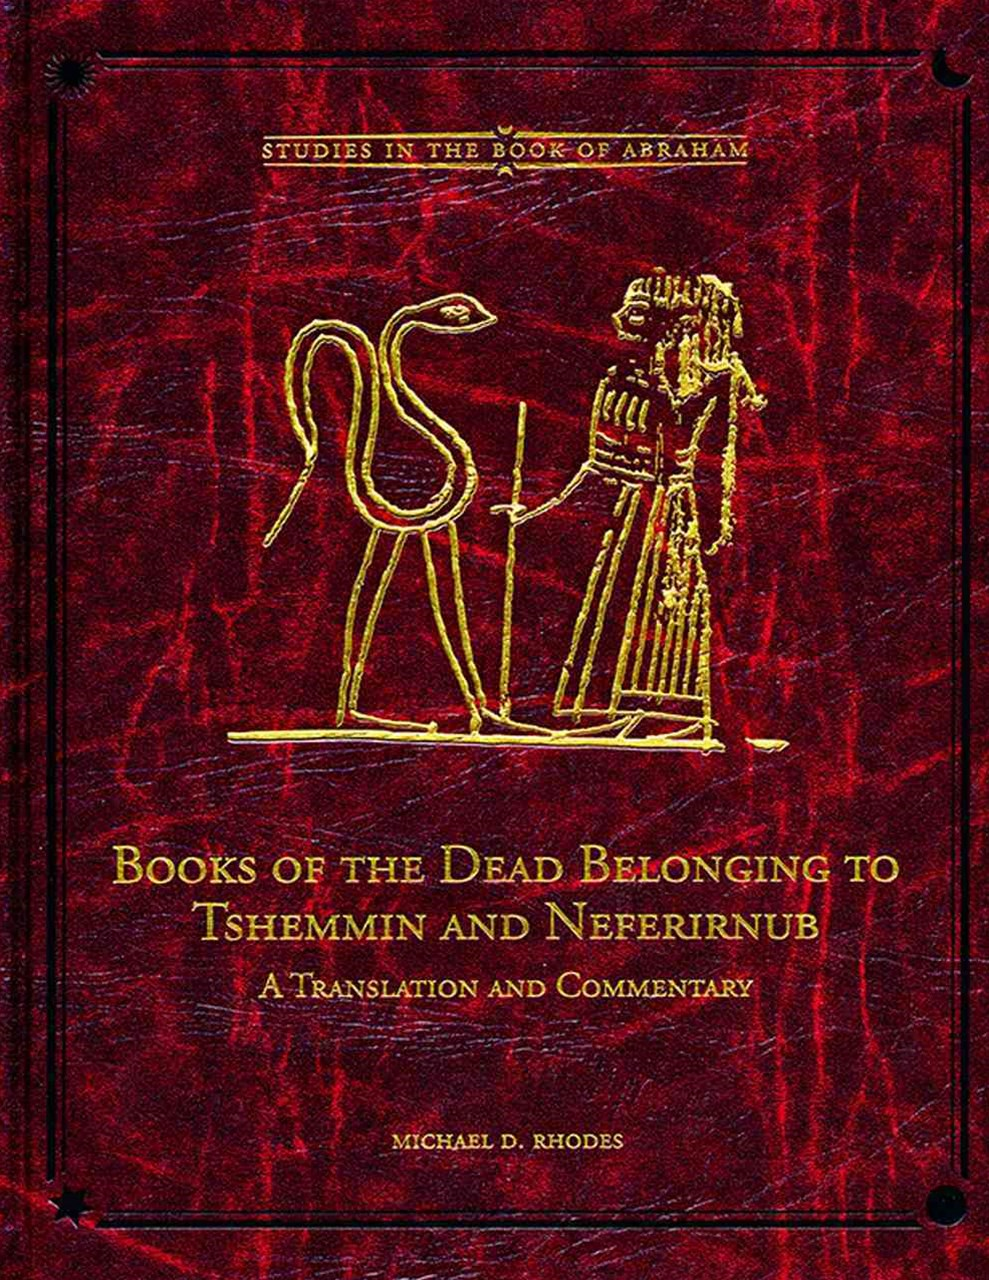 Books of the Dead Belonging to Tshemmin and Neferirnub